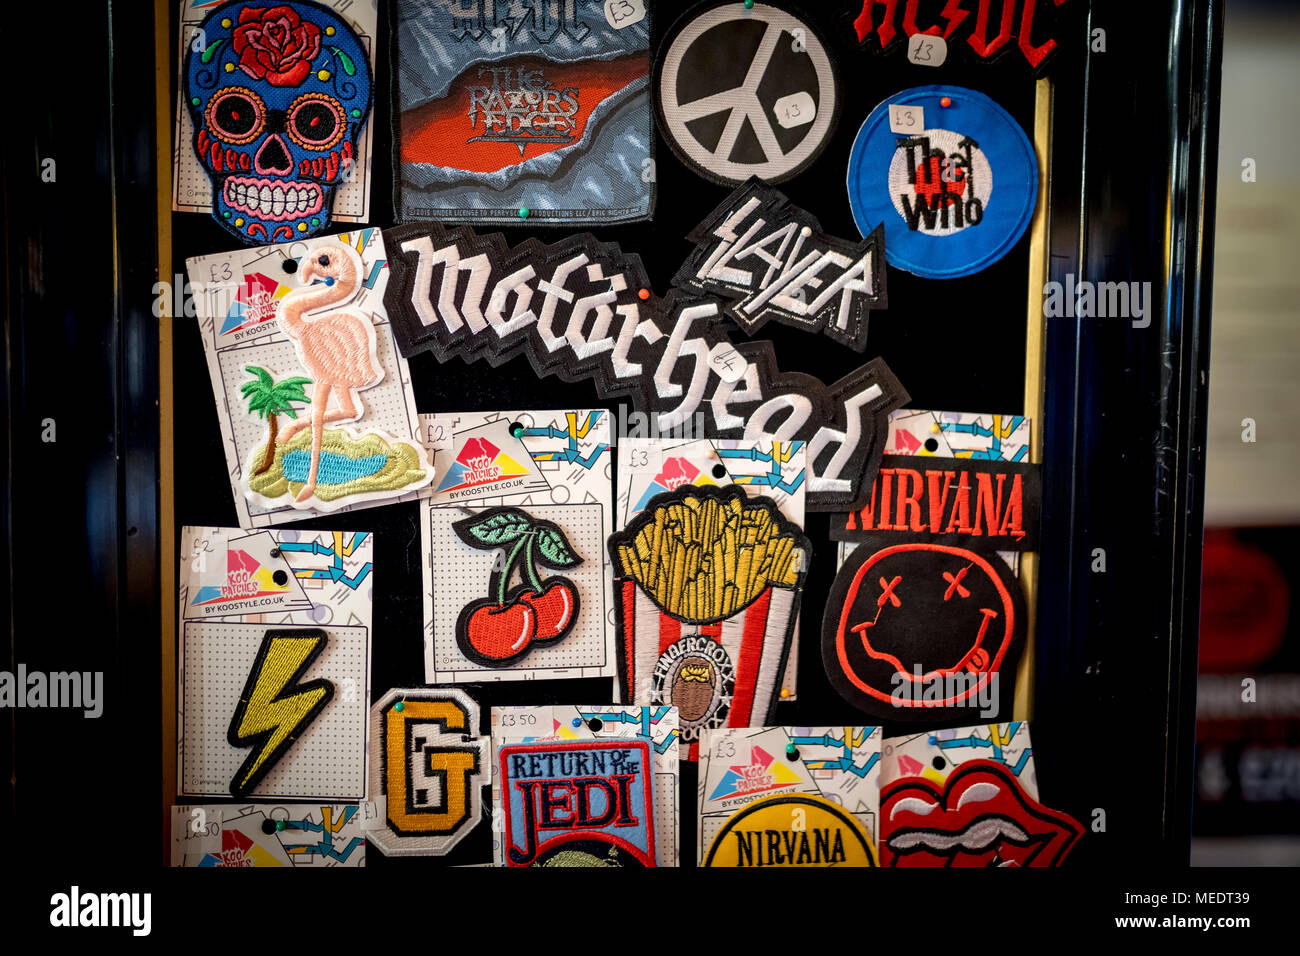 Embroidered vintage Metal Rock Punk Indie Music Band Sew Iron On Patches on display in the UK including Motorhead, ACDC, Nirvana, Rolling Stones and R - Stock Image